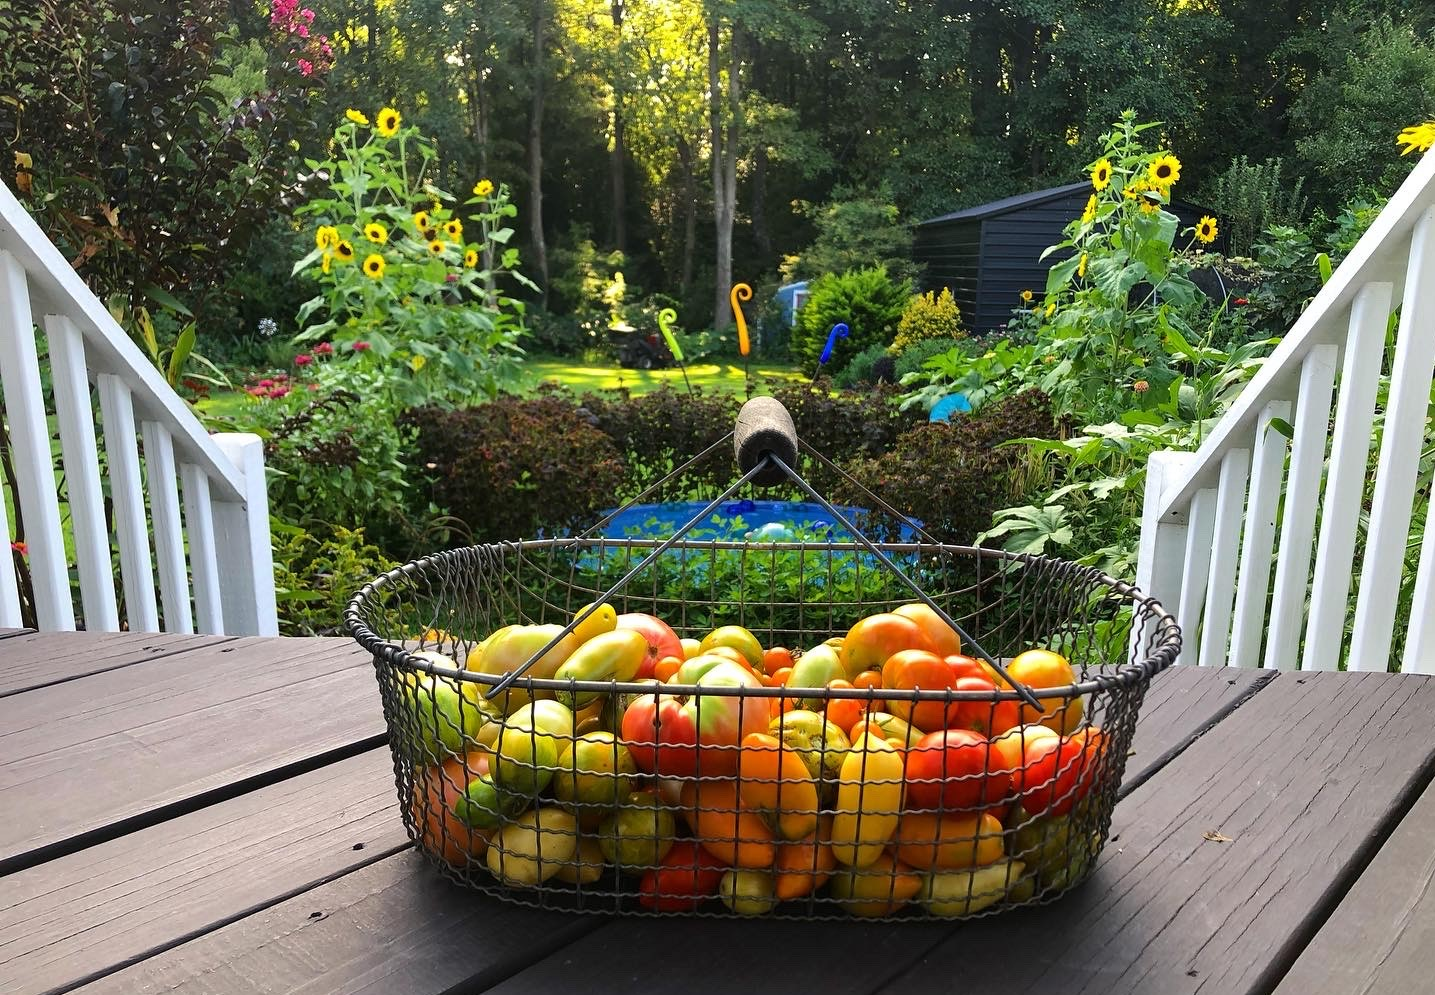 Late summer tomato harvest and foodscape